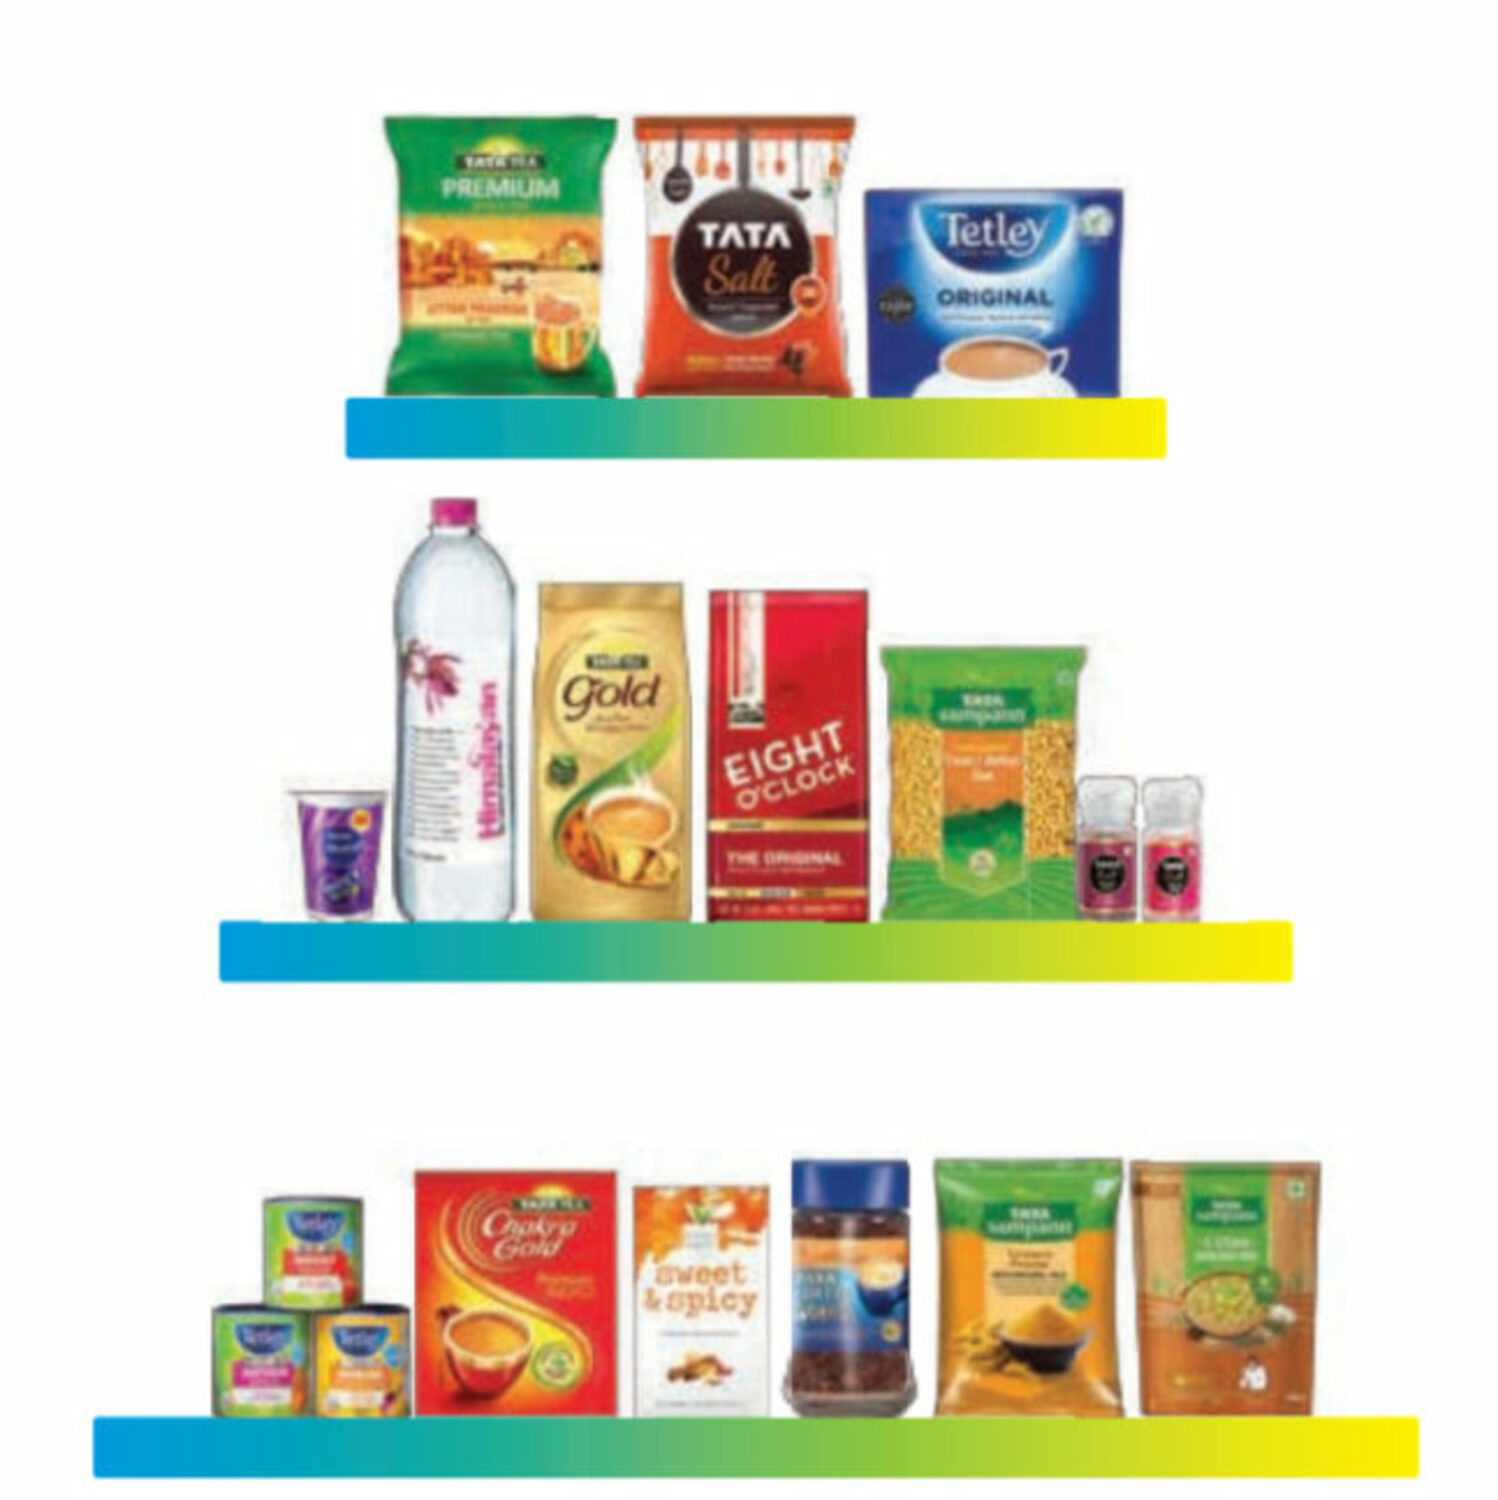 Brands and Products of Tata Consumer Products Limited